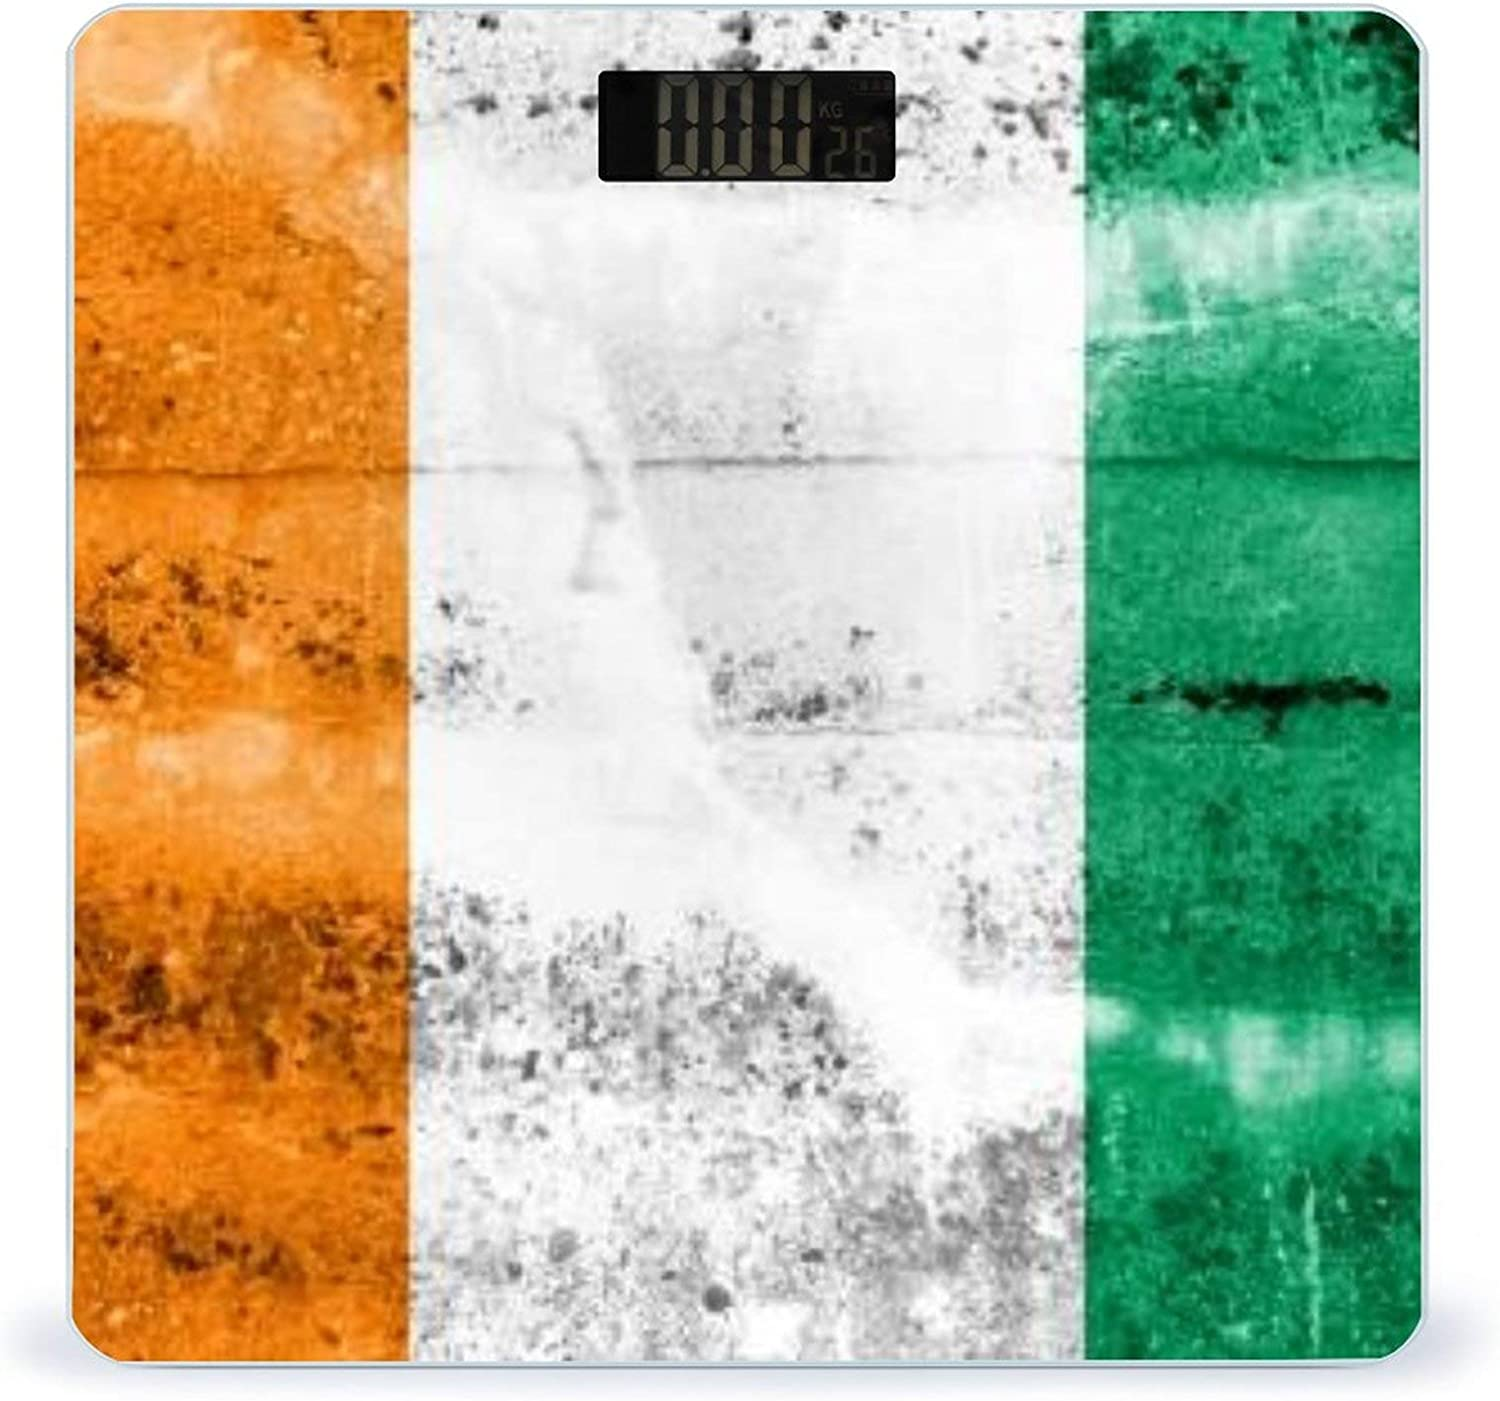 Ivory New sales Coast Flag Limited price sale Painted On Grunge Highly Smart Accurate Wall Fi